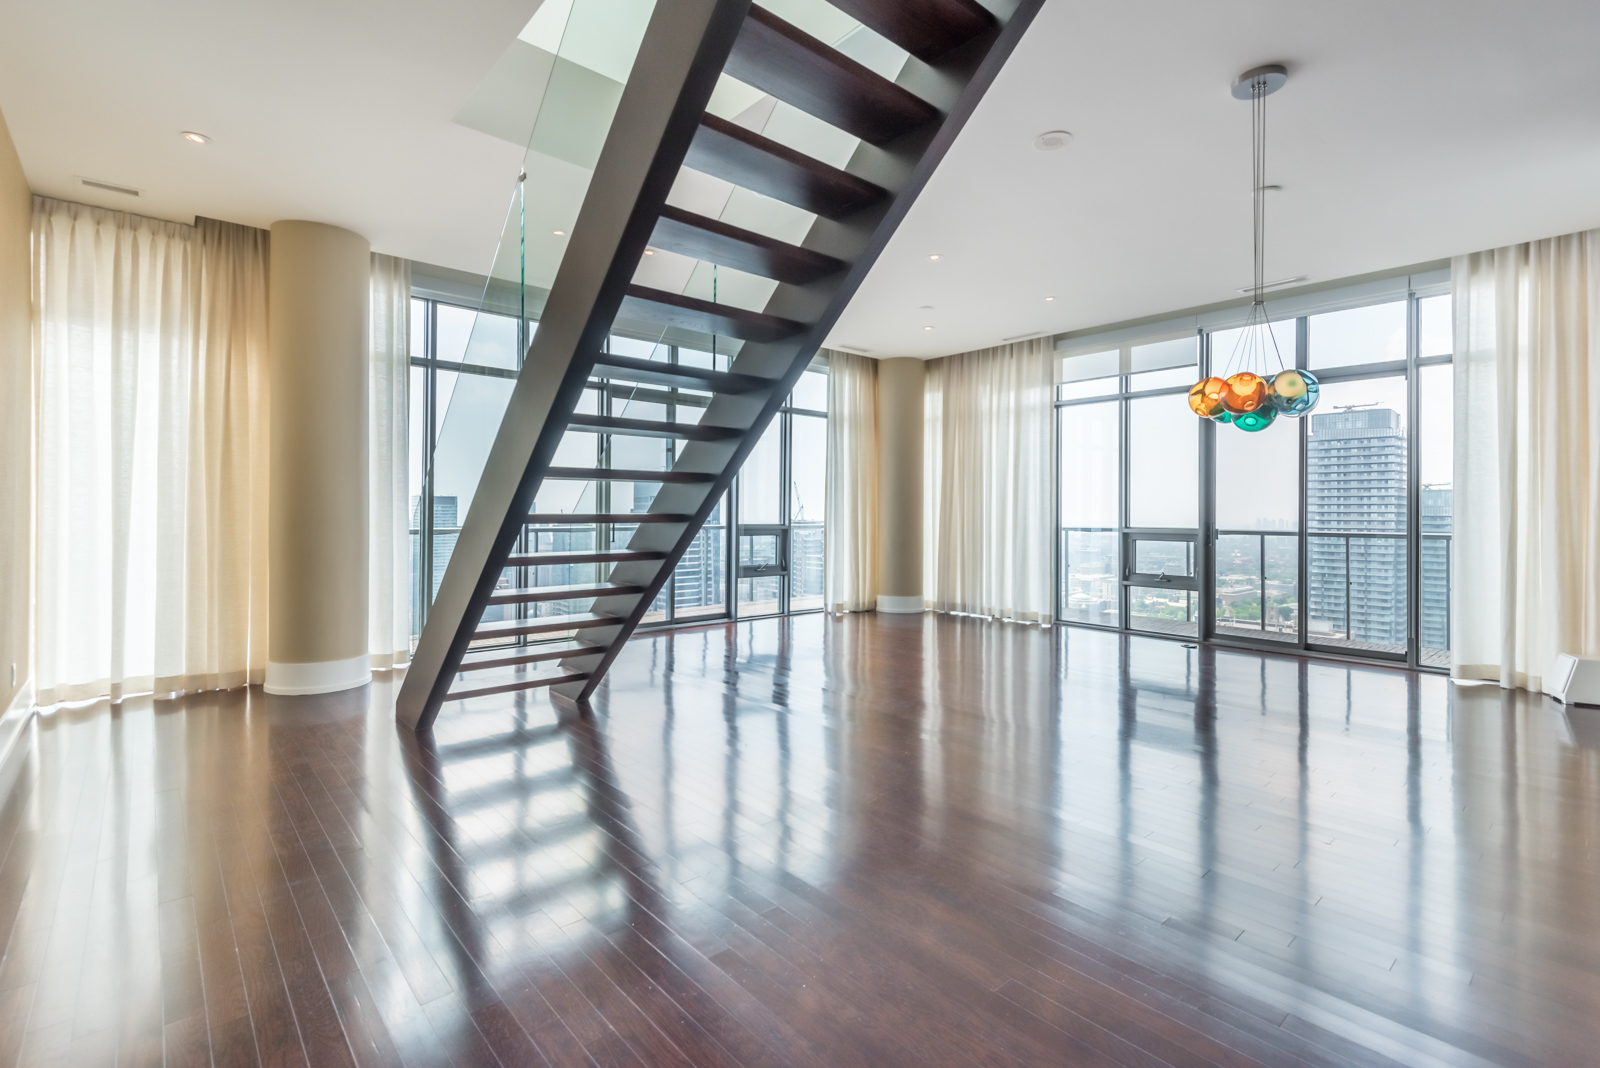 Empty penthouse with shiny floors and staircase with glass panels; most expensive property at 33 Charles St E Casa Condos.